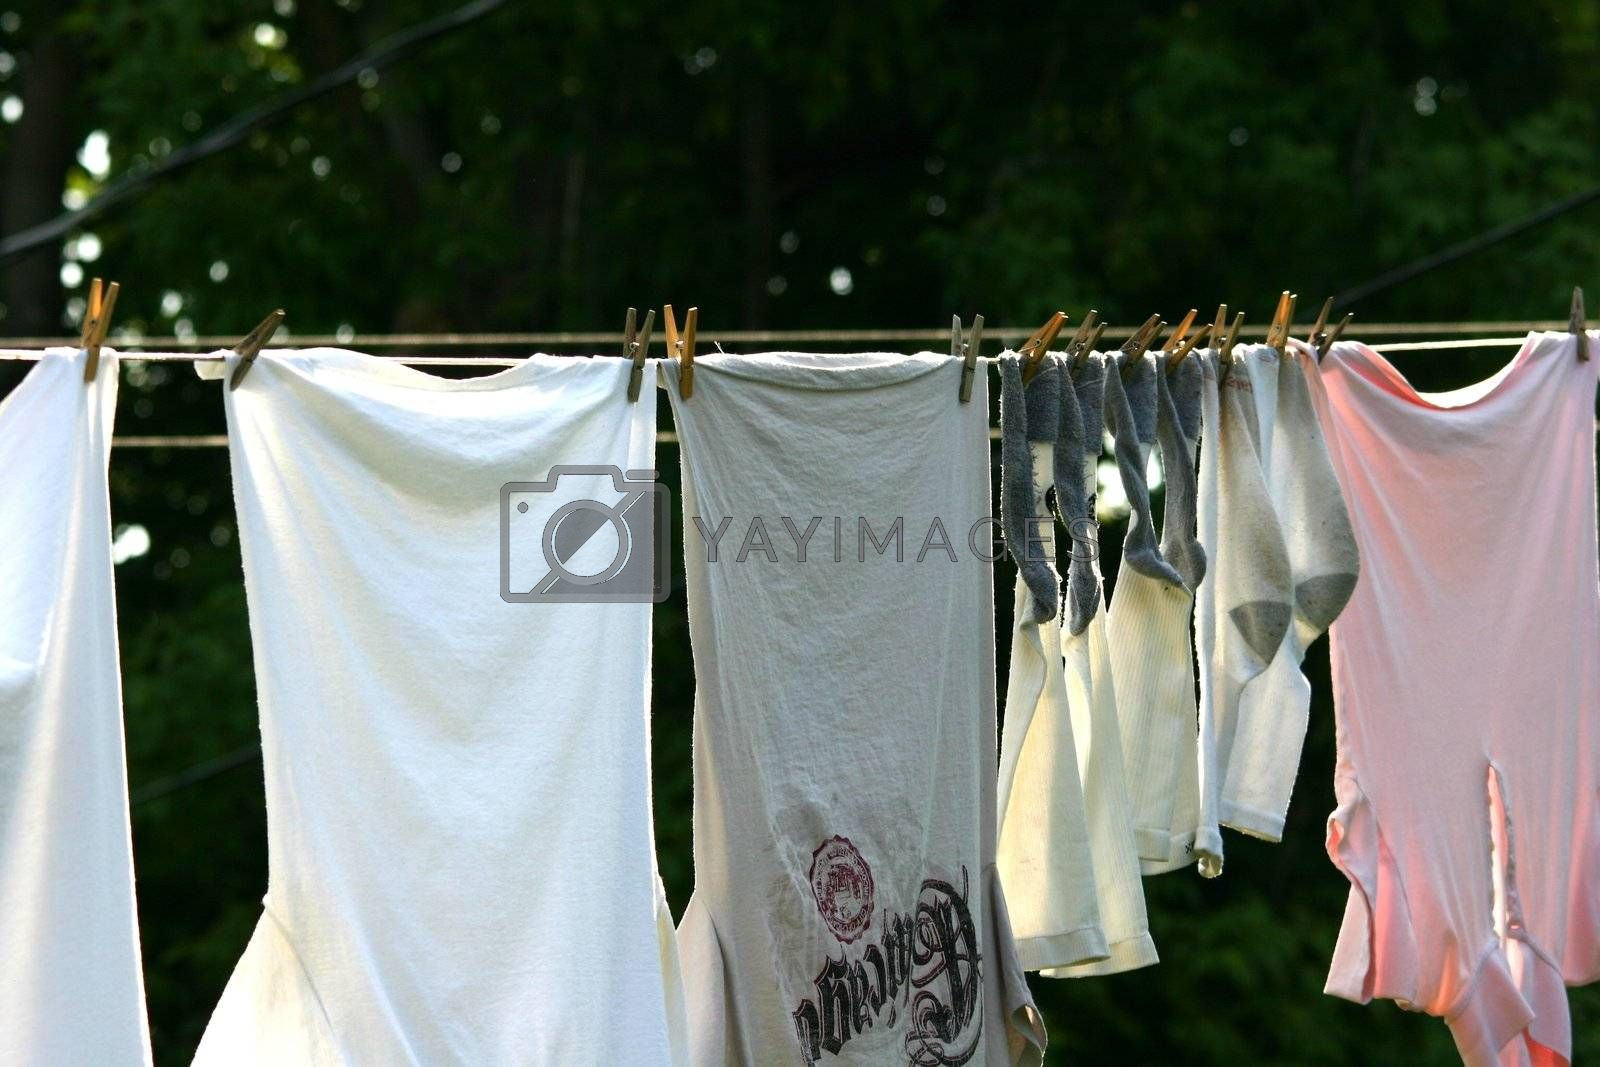 Clothes hanging outside to dry in the sun